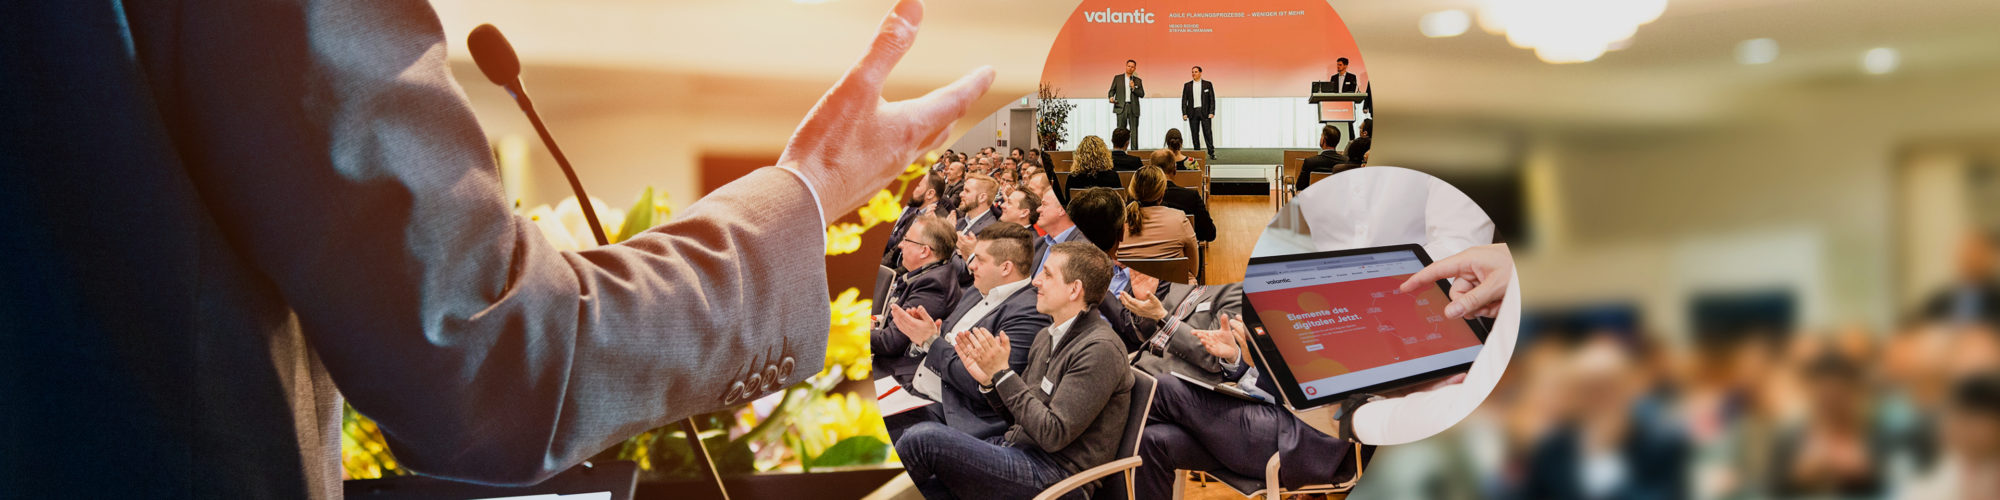 Image of a speaker at a digital congress, an applauding audience